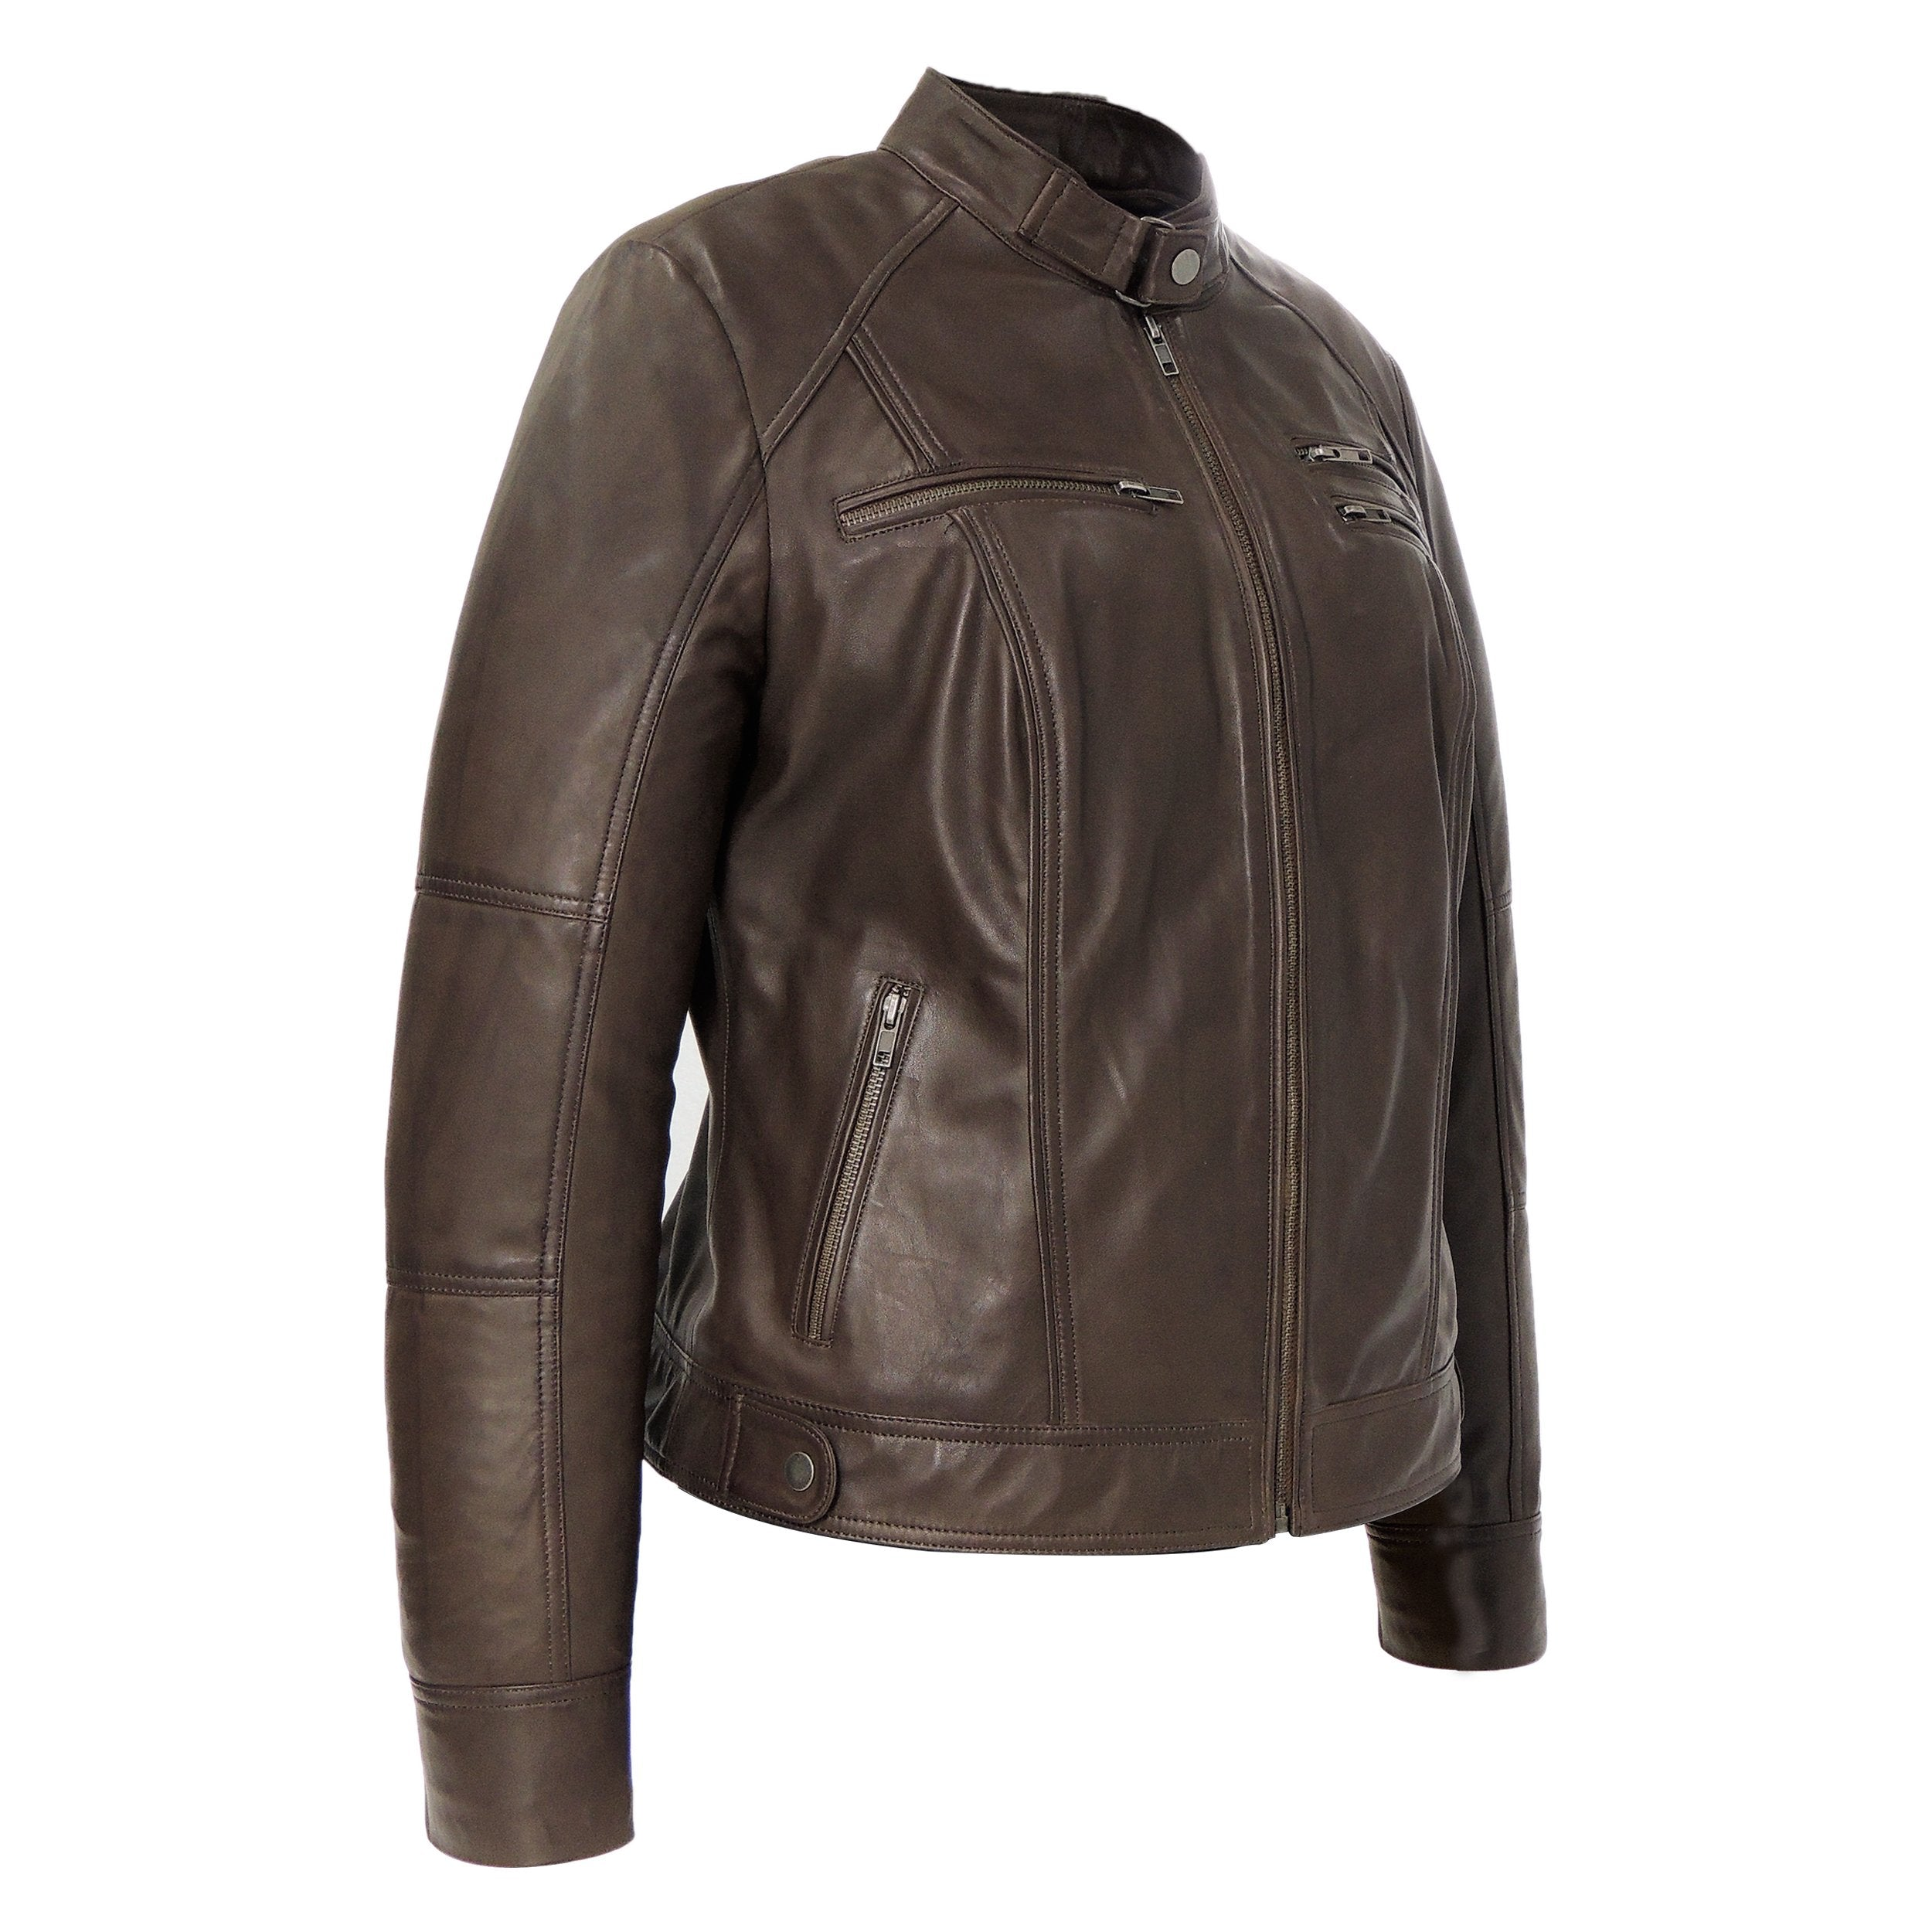 Womens Leather Jacket - Womens Brown Medium Leather Jacket